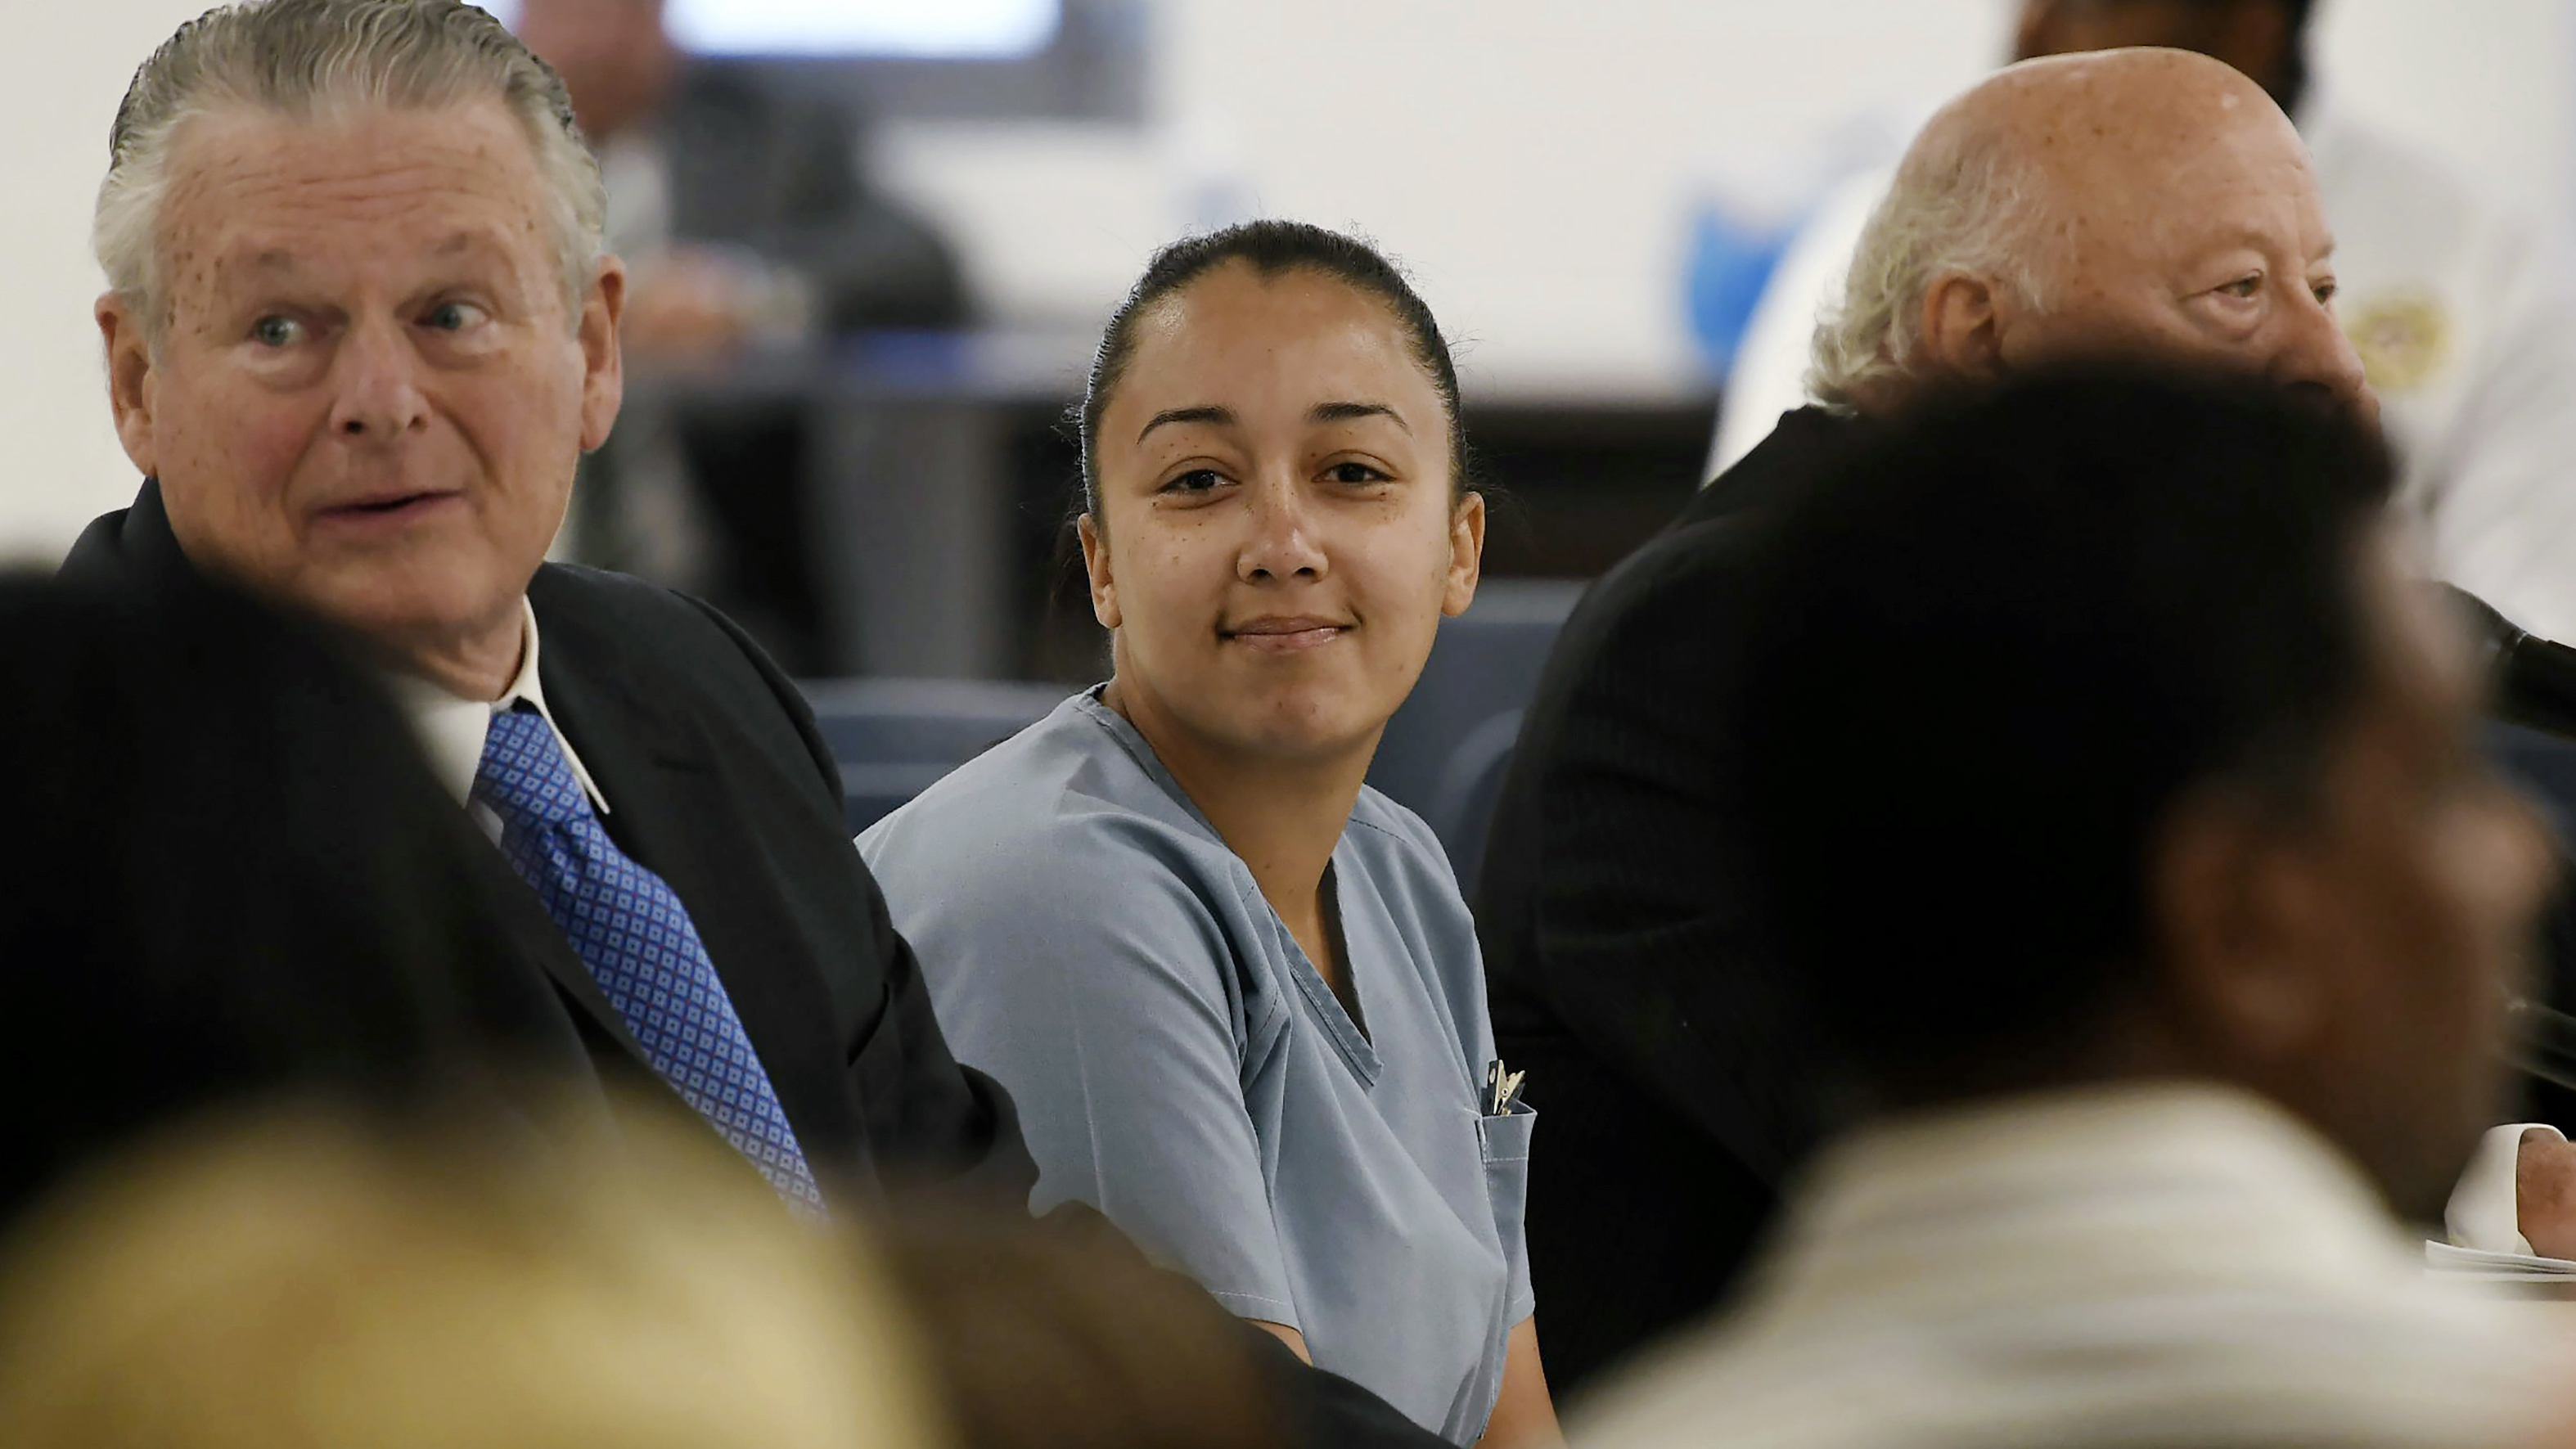 Cyntoia Brown, who was sentenced to a life prison term for killing a man when she was 16, says she will help others avoid the situation she found herself in. She's seen here looking at family members during a clemency hearing in May 2018.